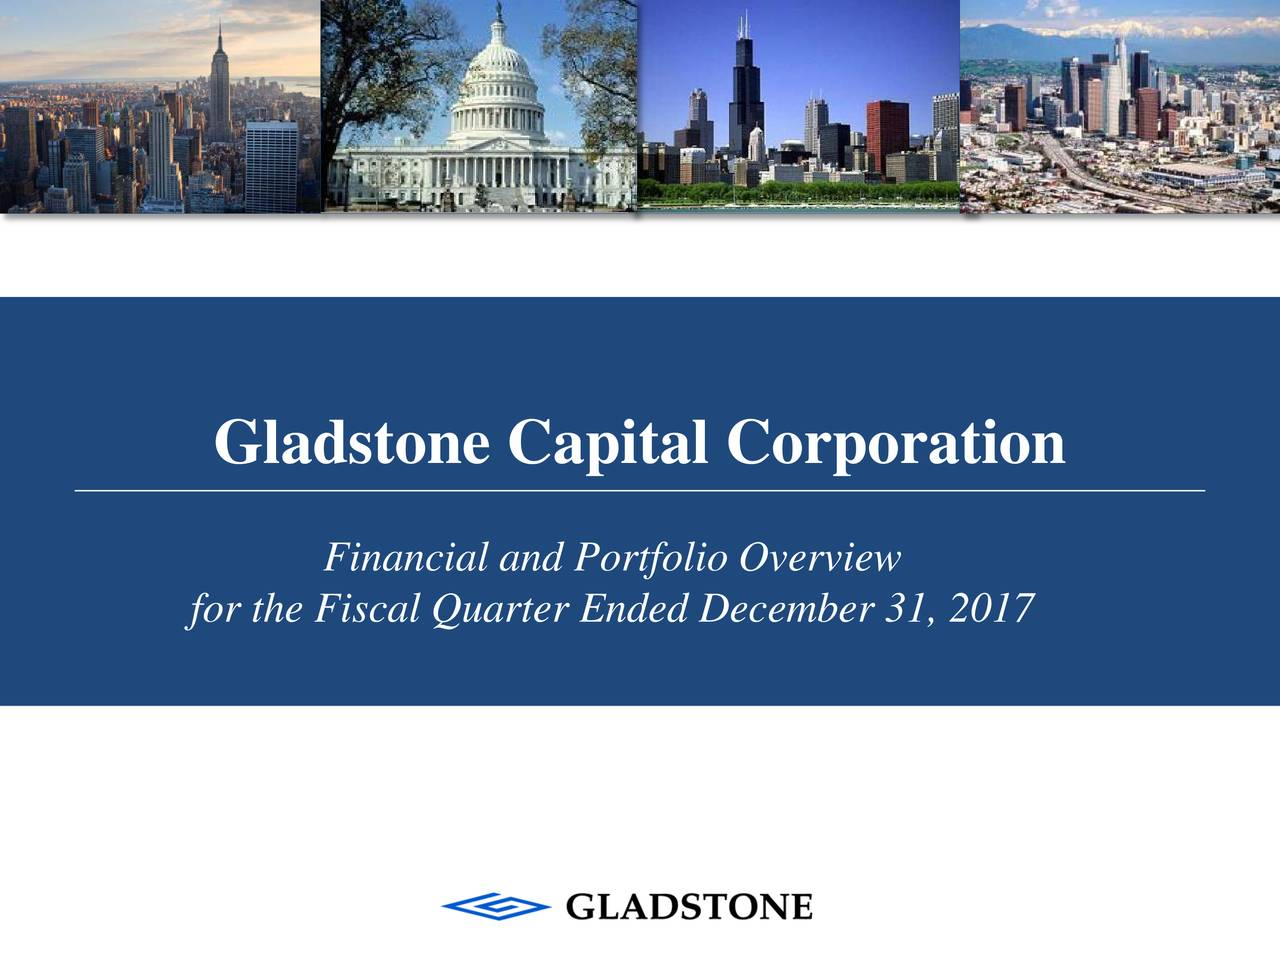 Financial and Portfolio Overview for the Fiscal Quarter Ended December 31, 2017